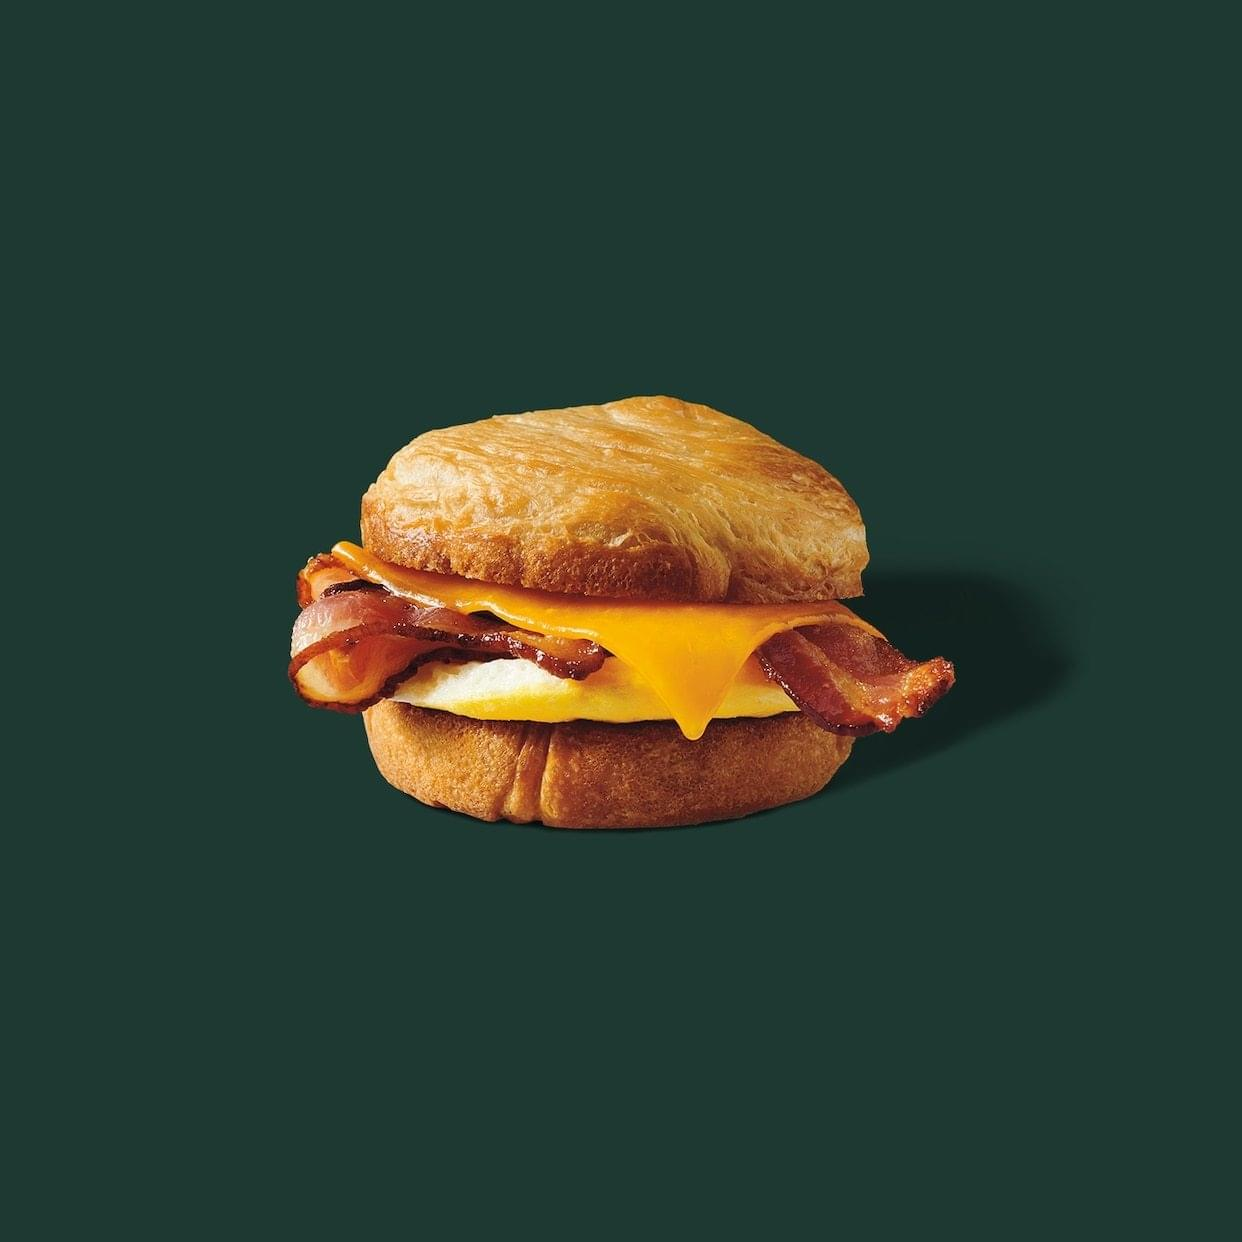 Starbucks Double-Smoked Bacon, Cheddar & Egg Sandwich Nutrition Facts